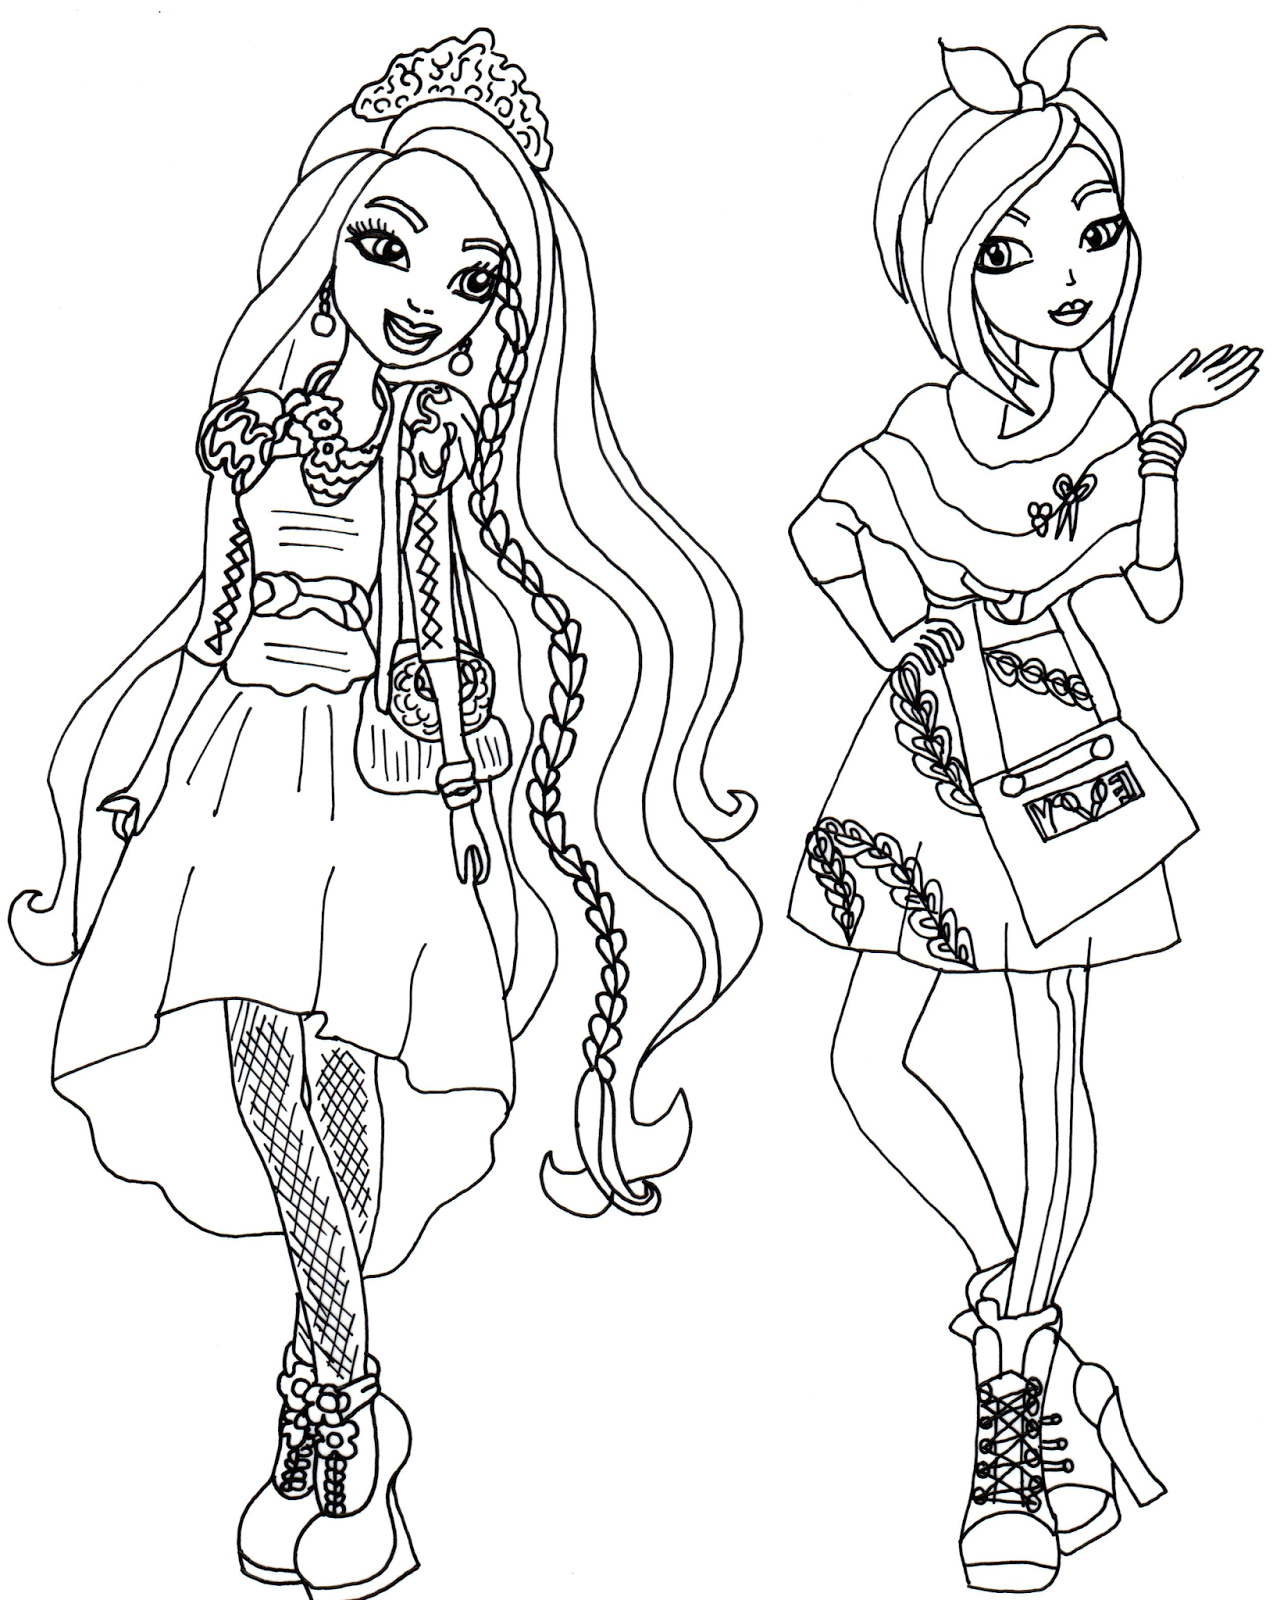 Free Printable Ever After High Coloring Pages Holly And Poppy O Coloring Home In 2020 Halloween Coloring Pictures Barbie Coloring Pages Coloring Pages For Kids